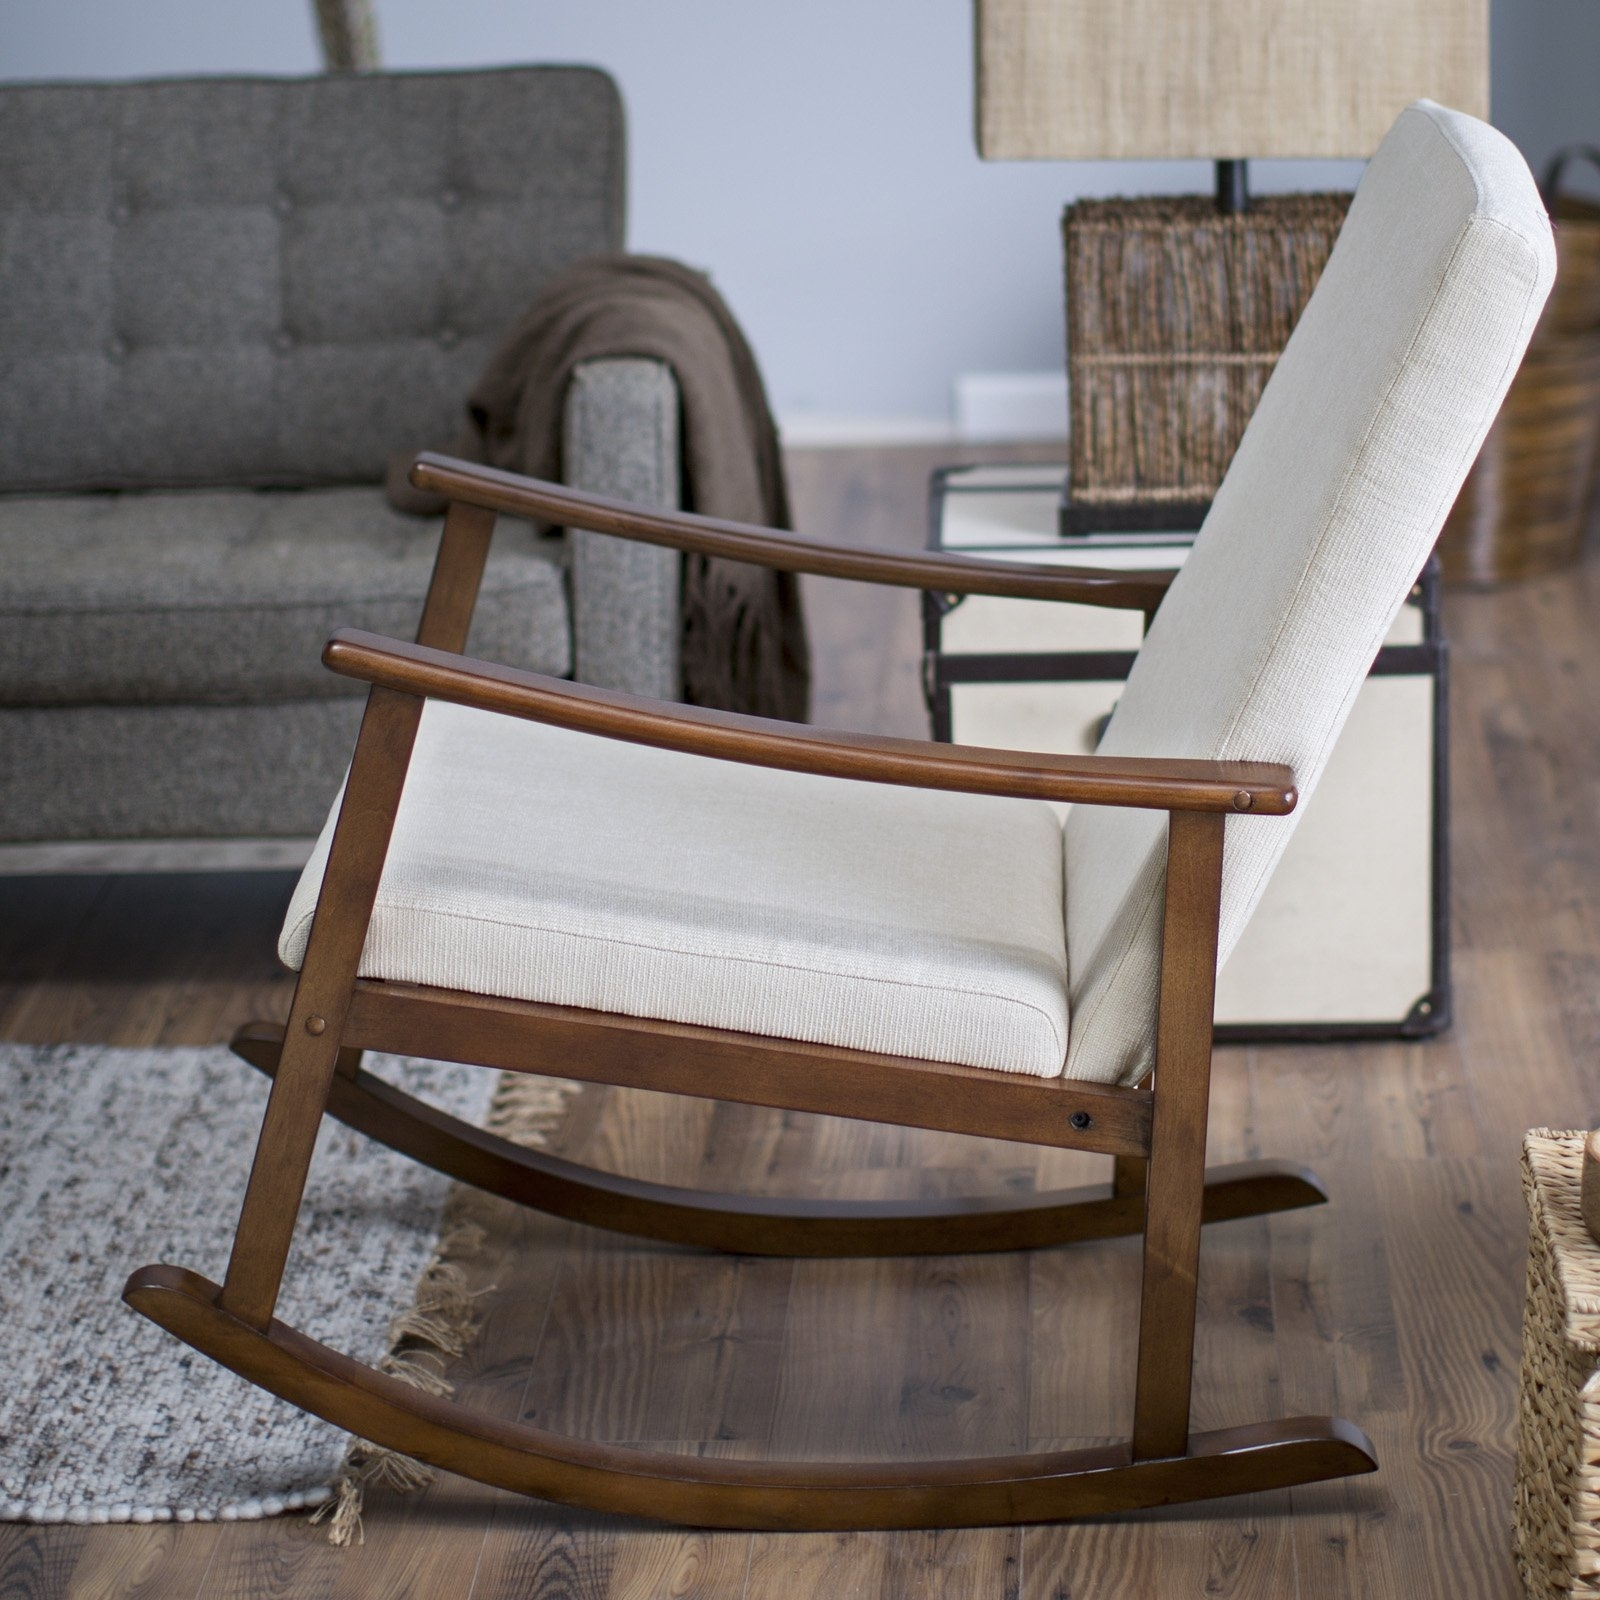 Trendy Rocking Chairs Pertaining To Belham Living Holden Modern Indoor Rocking Chair – Upholstered (View 15 of 15)